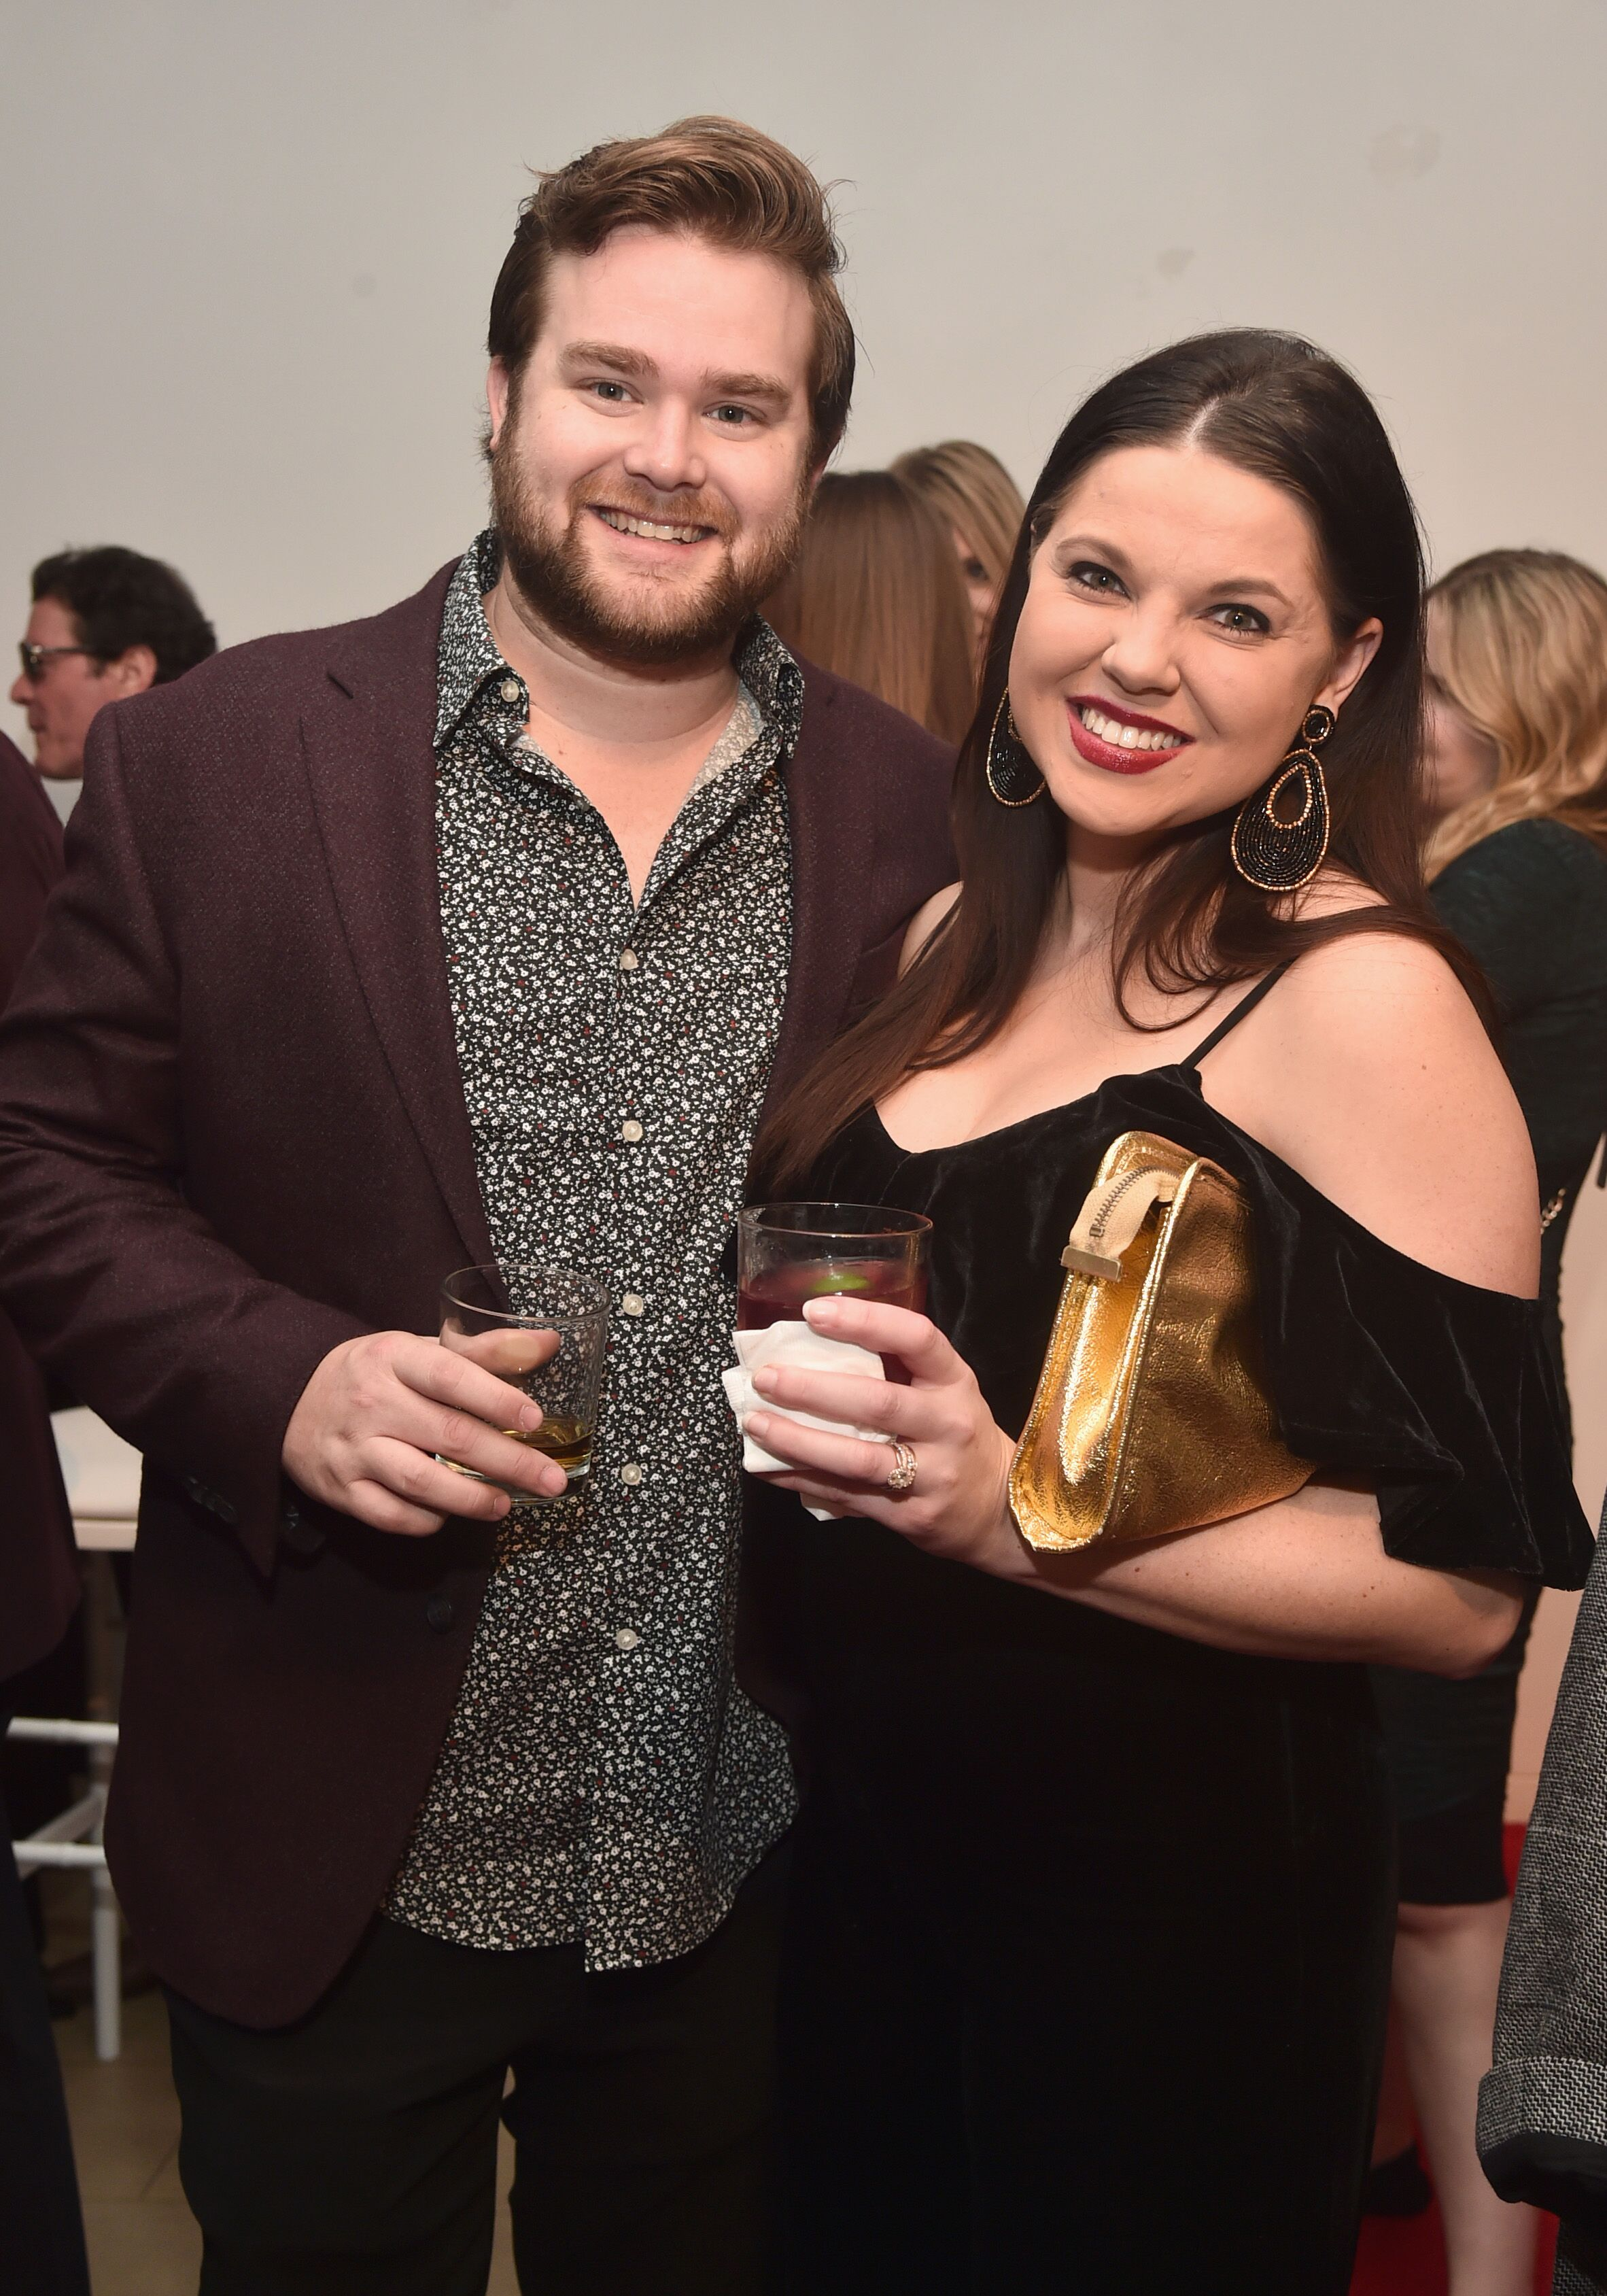 """Dillon King and Amy Duggar attend WE tv celebrates the return of """"Love After Lockup"""" with panel, """"Real Love: Relationship Reality TV's Past, Present & Future,"""" at The Paley Center for Media on December 11, 2018 in Beverly Hills, California 